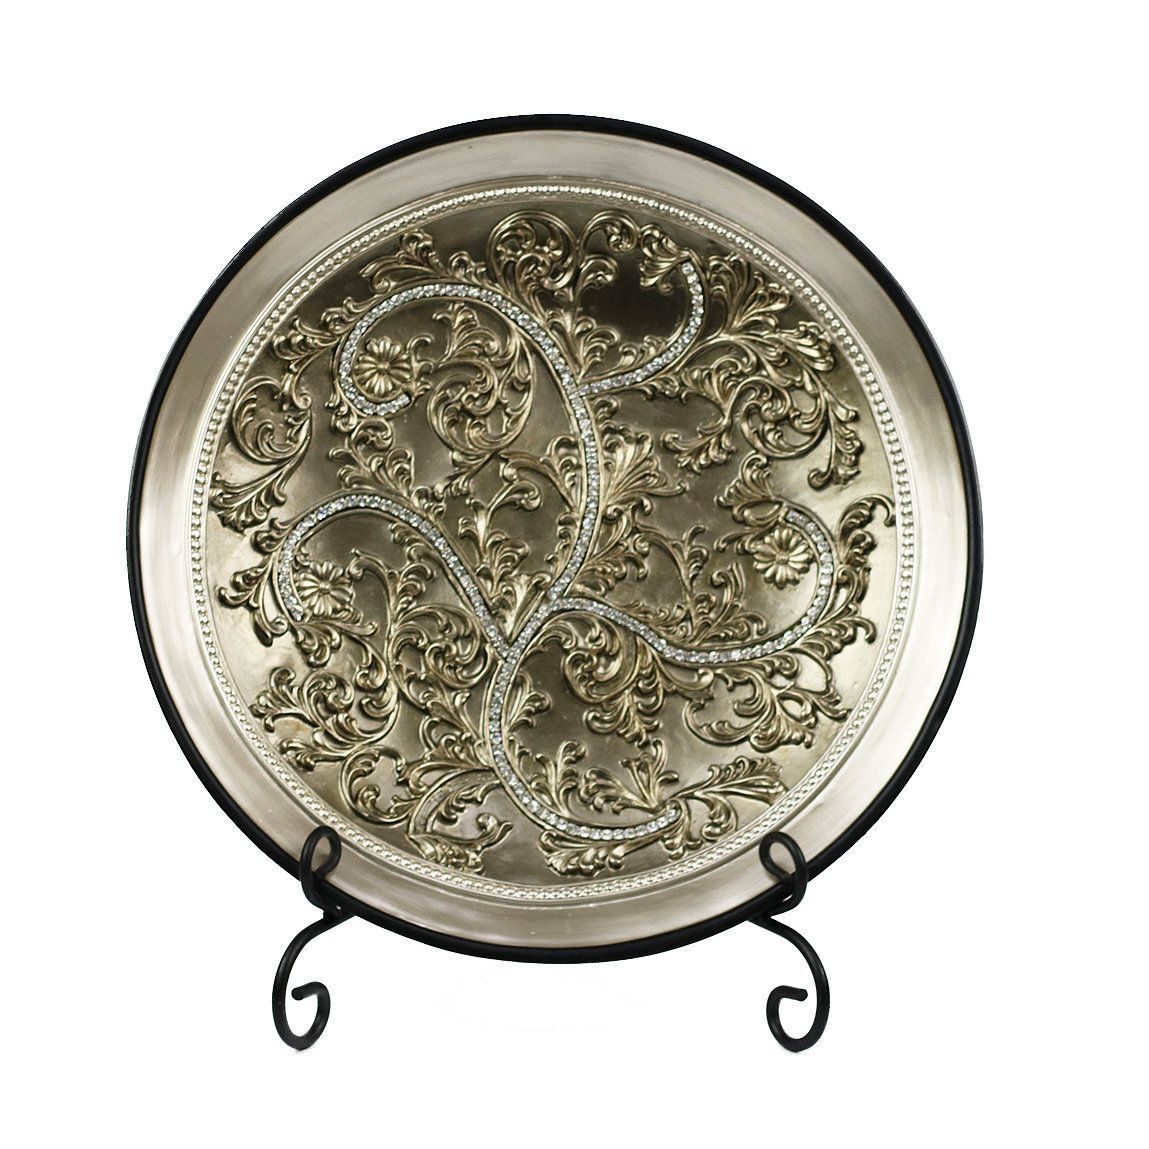 Large Decorative Plate With Stand D'lusso Designs Alana Collection Plate With Stand  Products